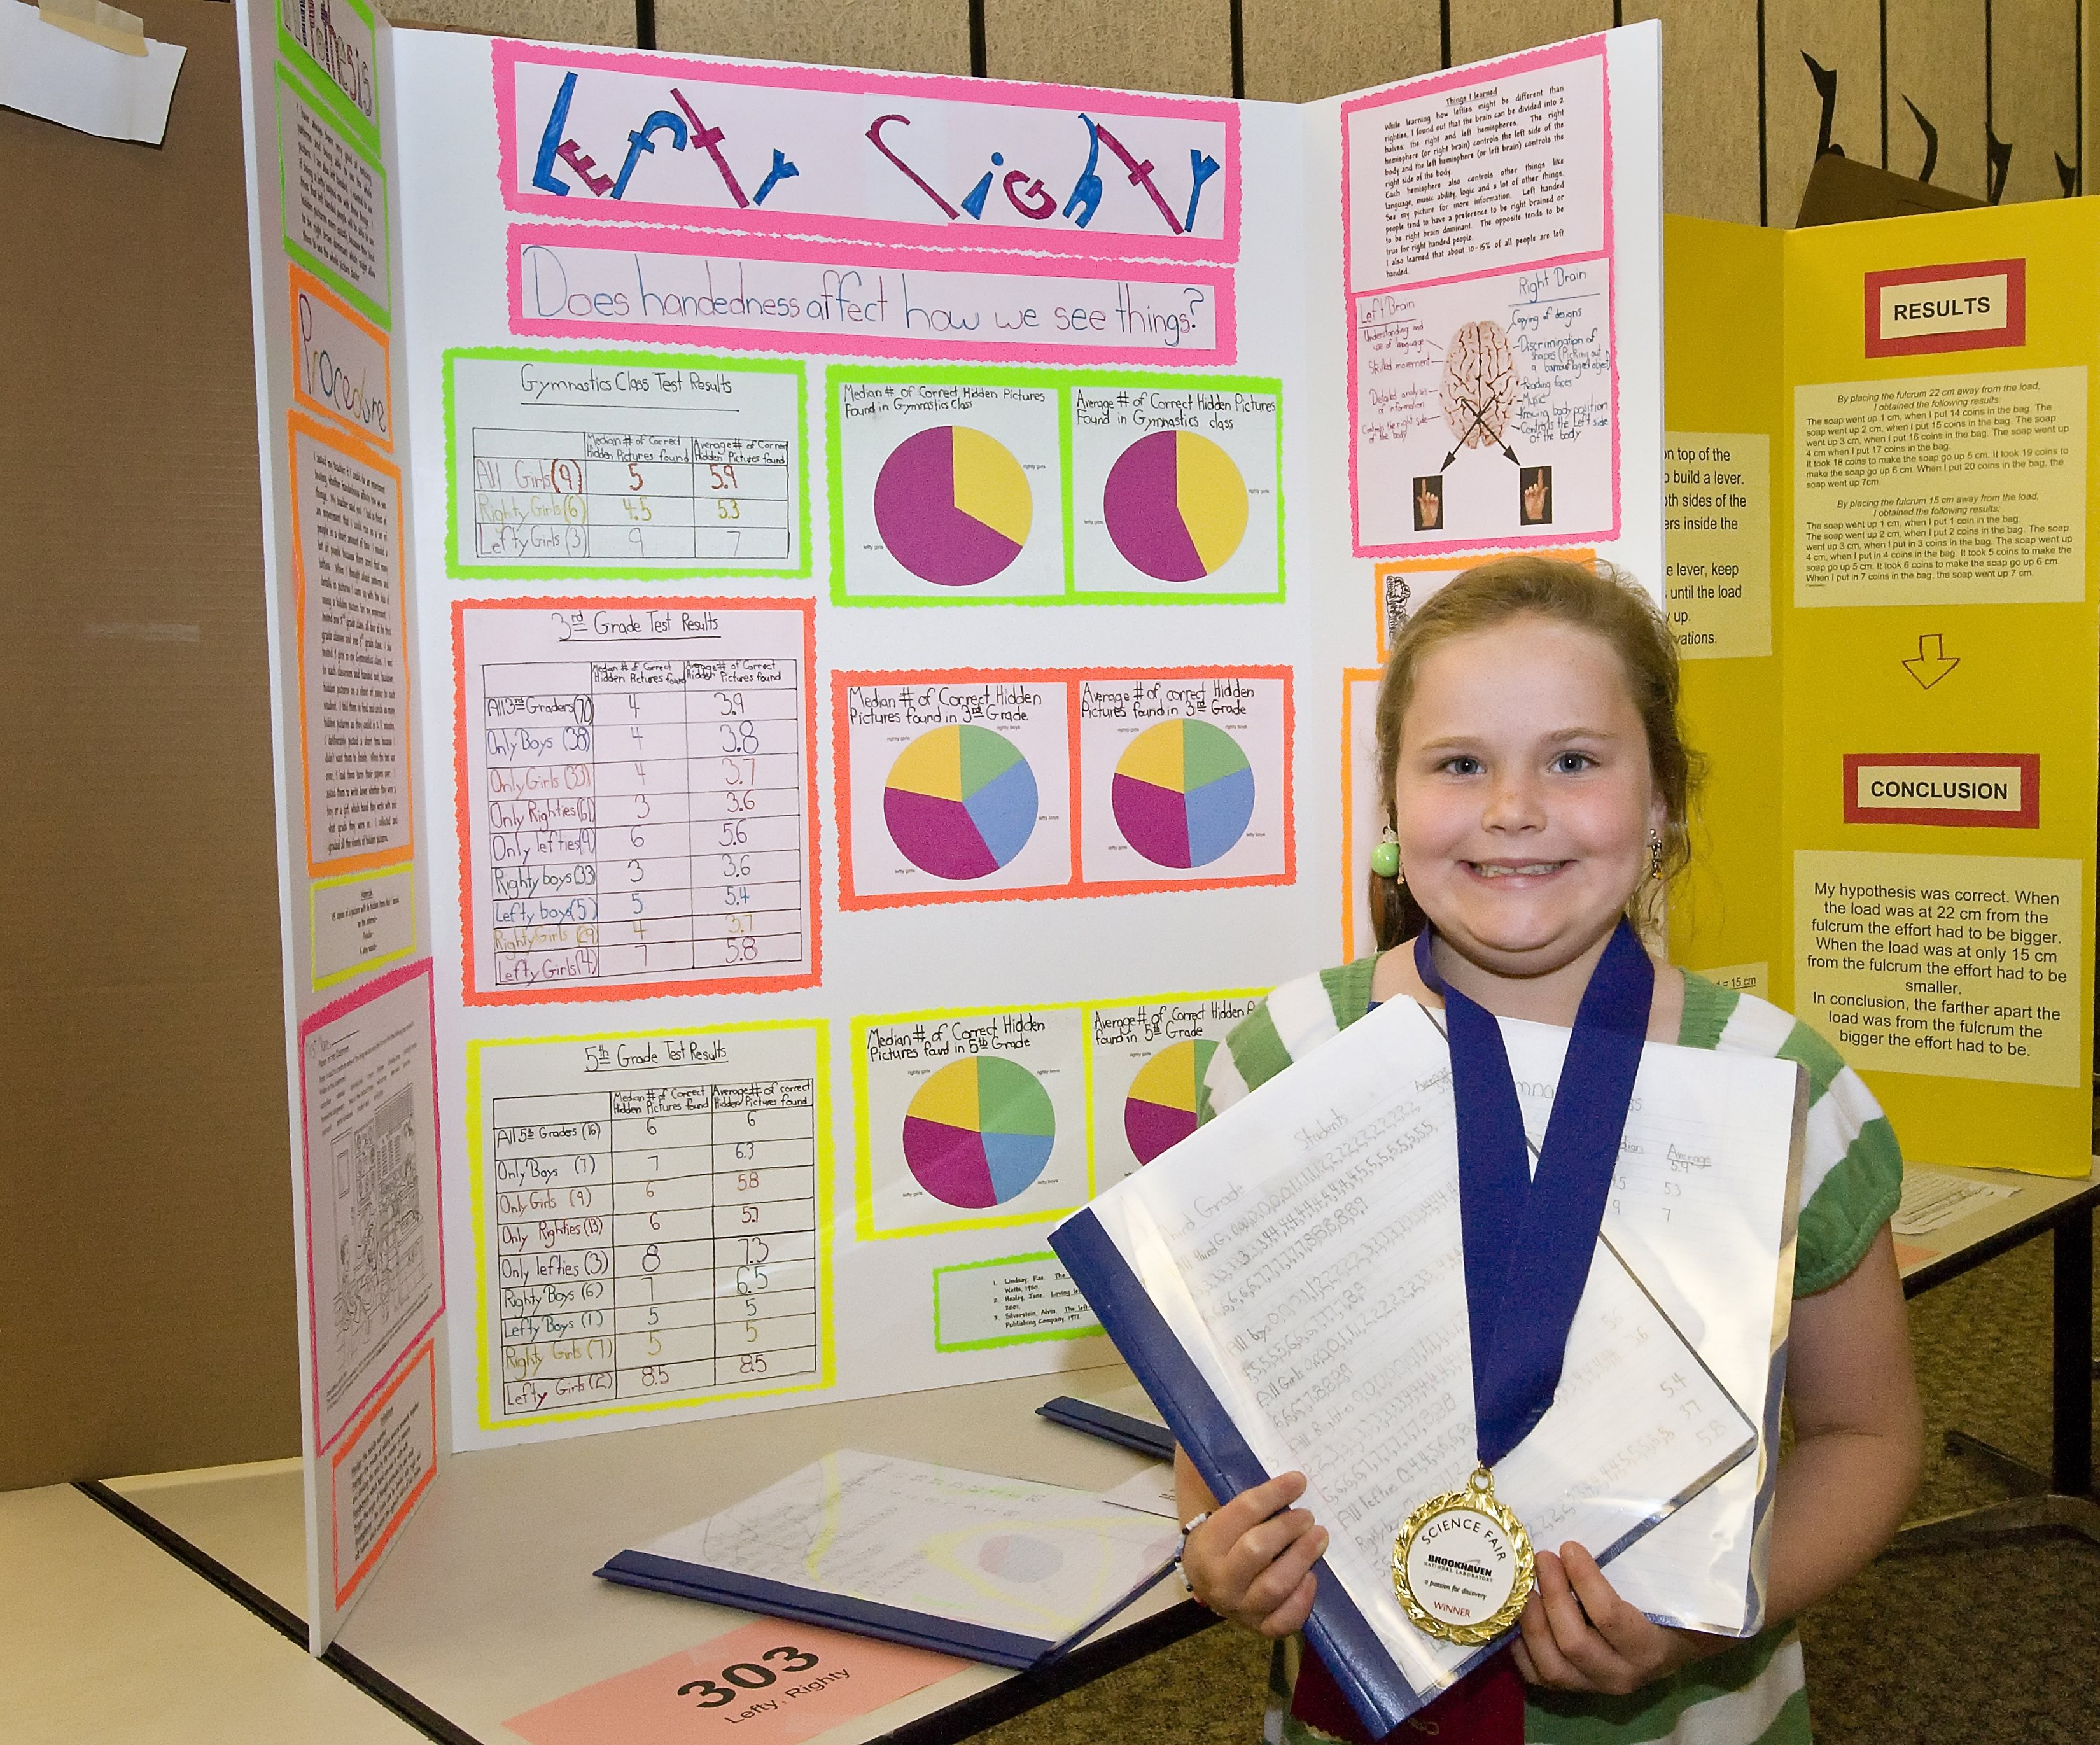 10 Attractive Fourth Grade Science Project Ideas from ant control to wind energy winning projects at brookhaven 25 2020